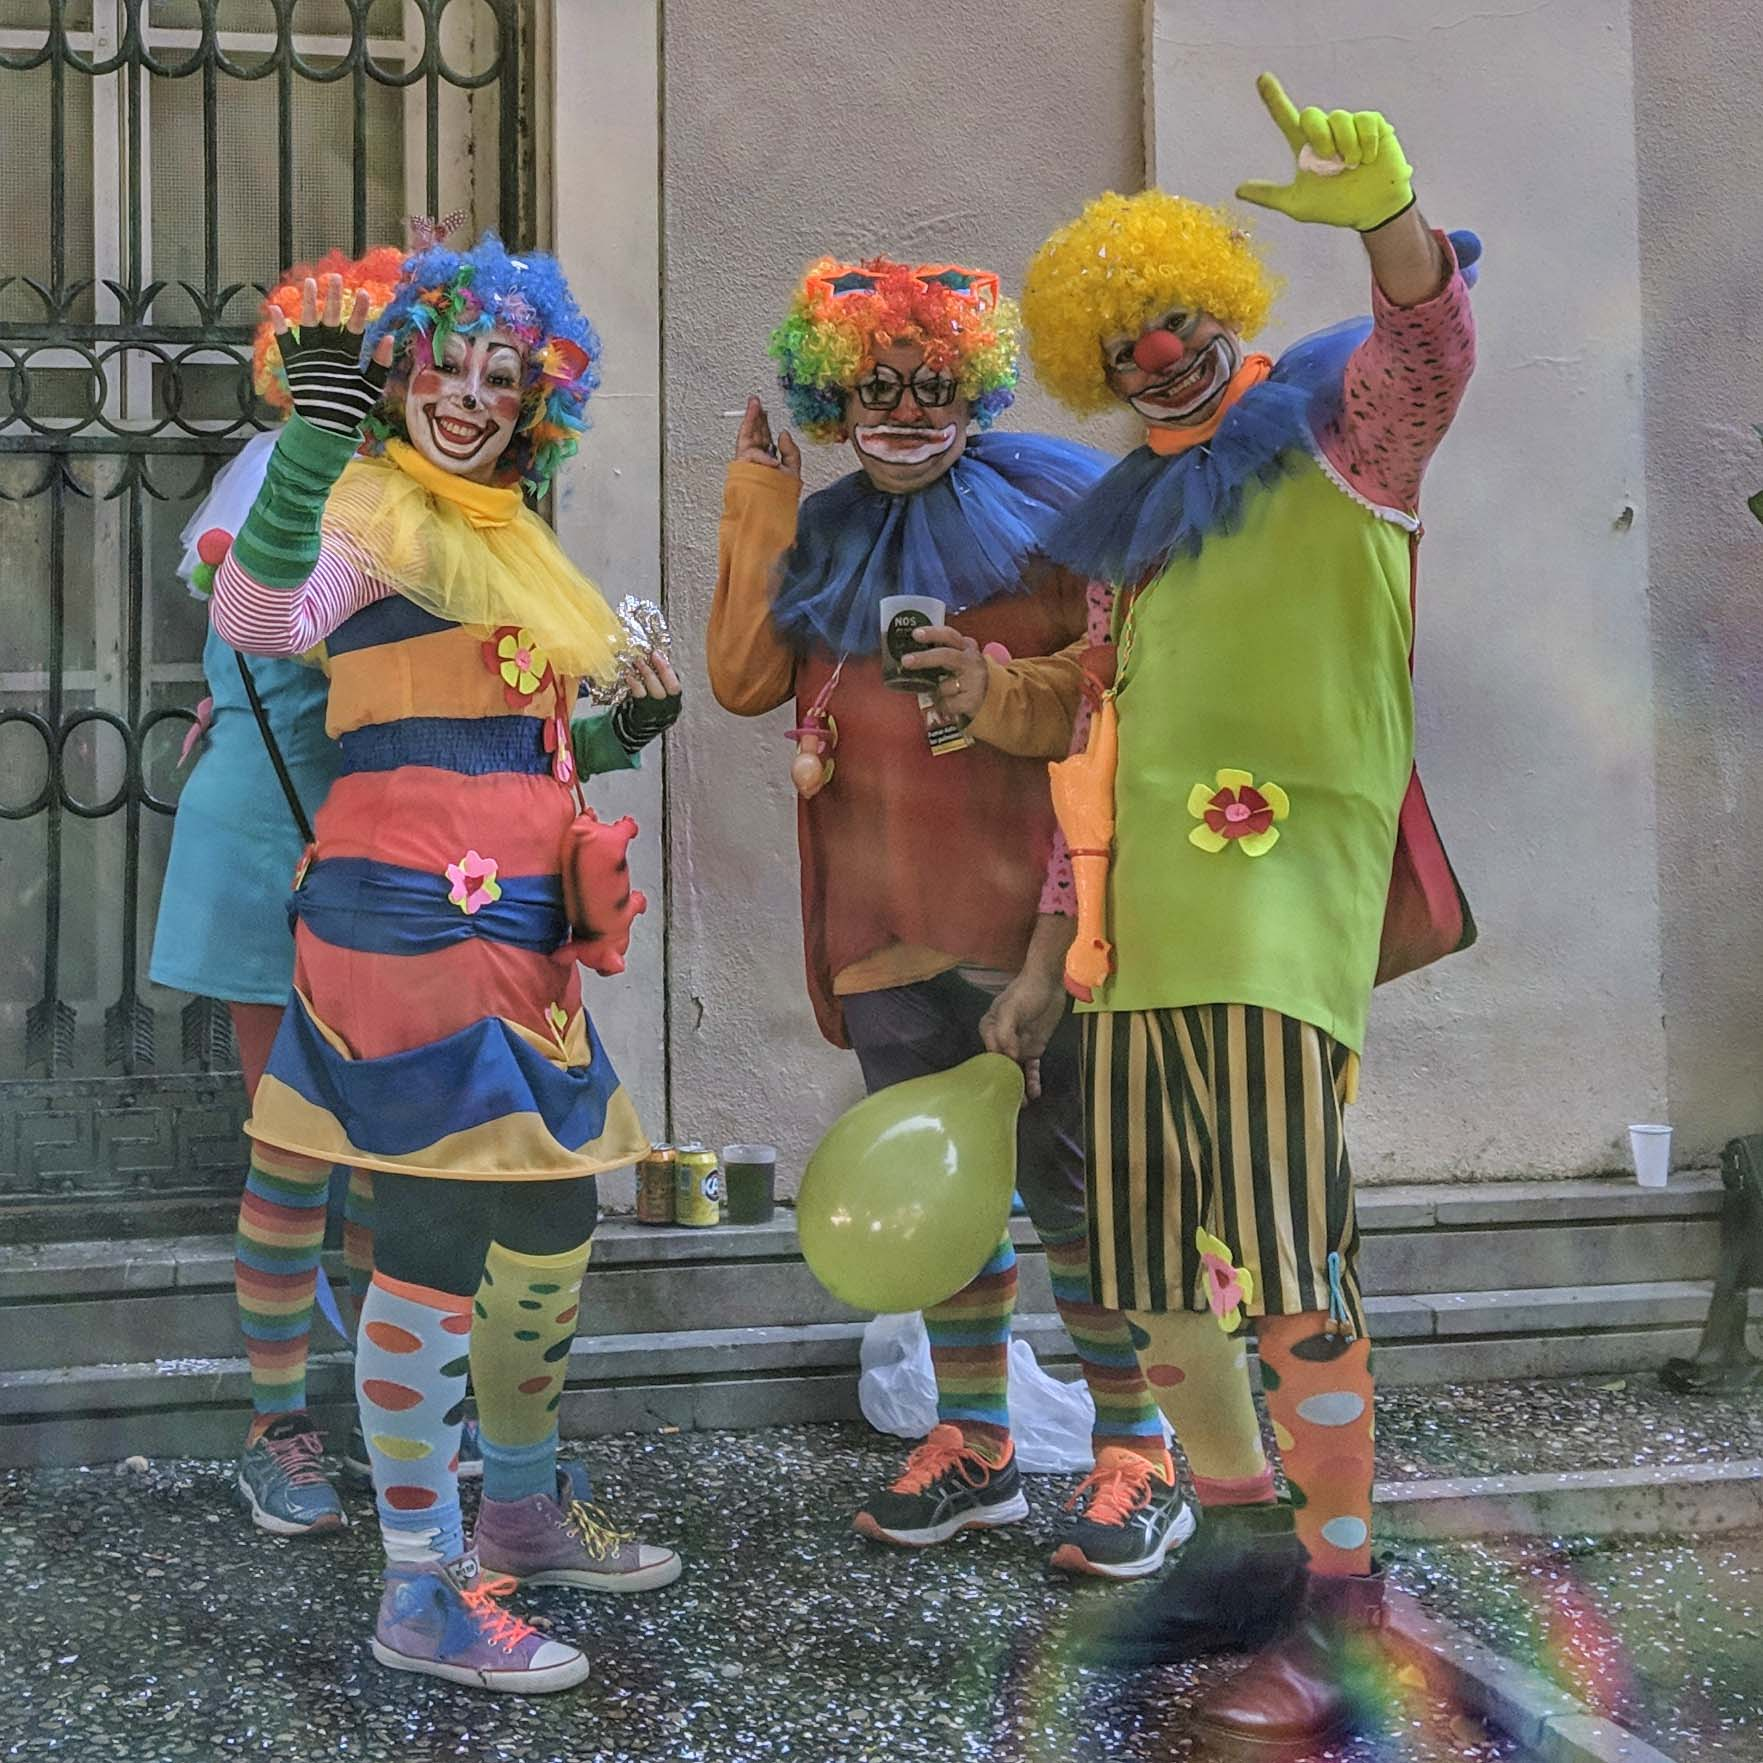 Happy clowns!